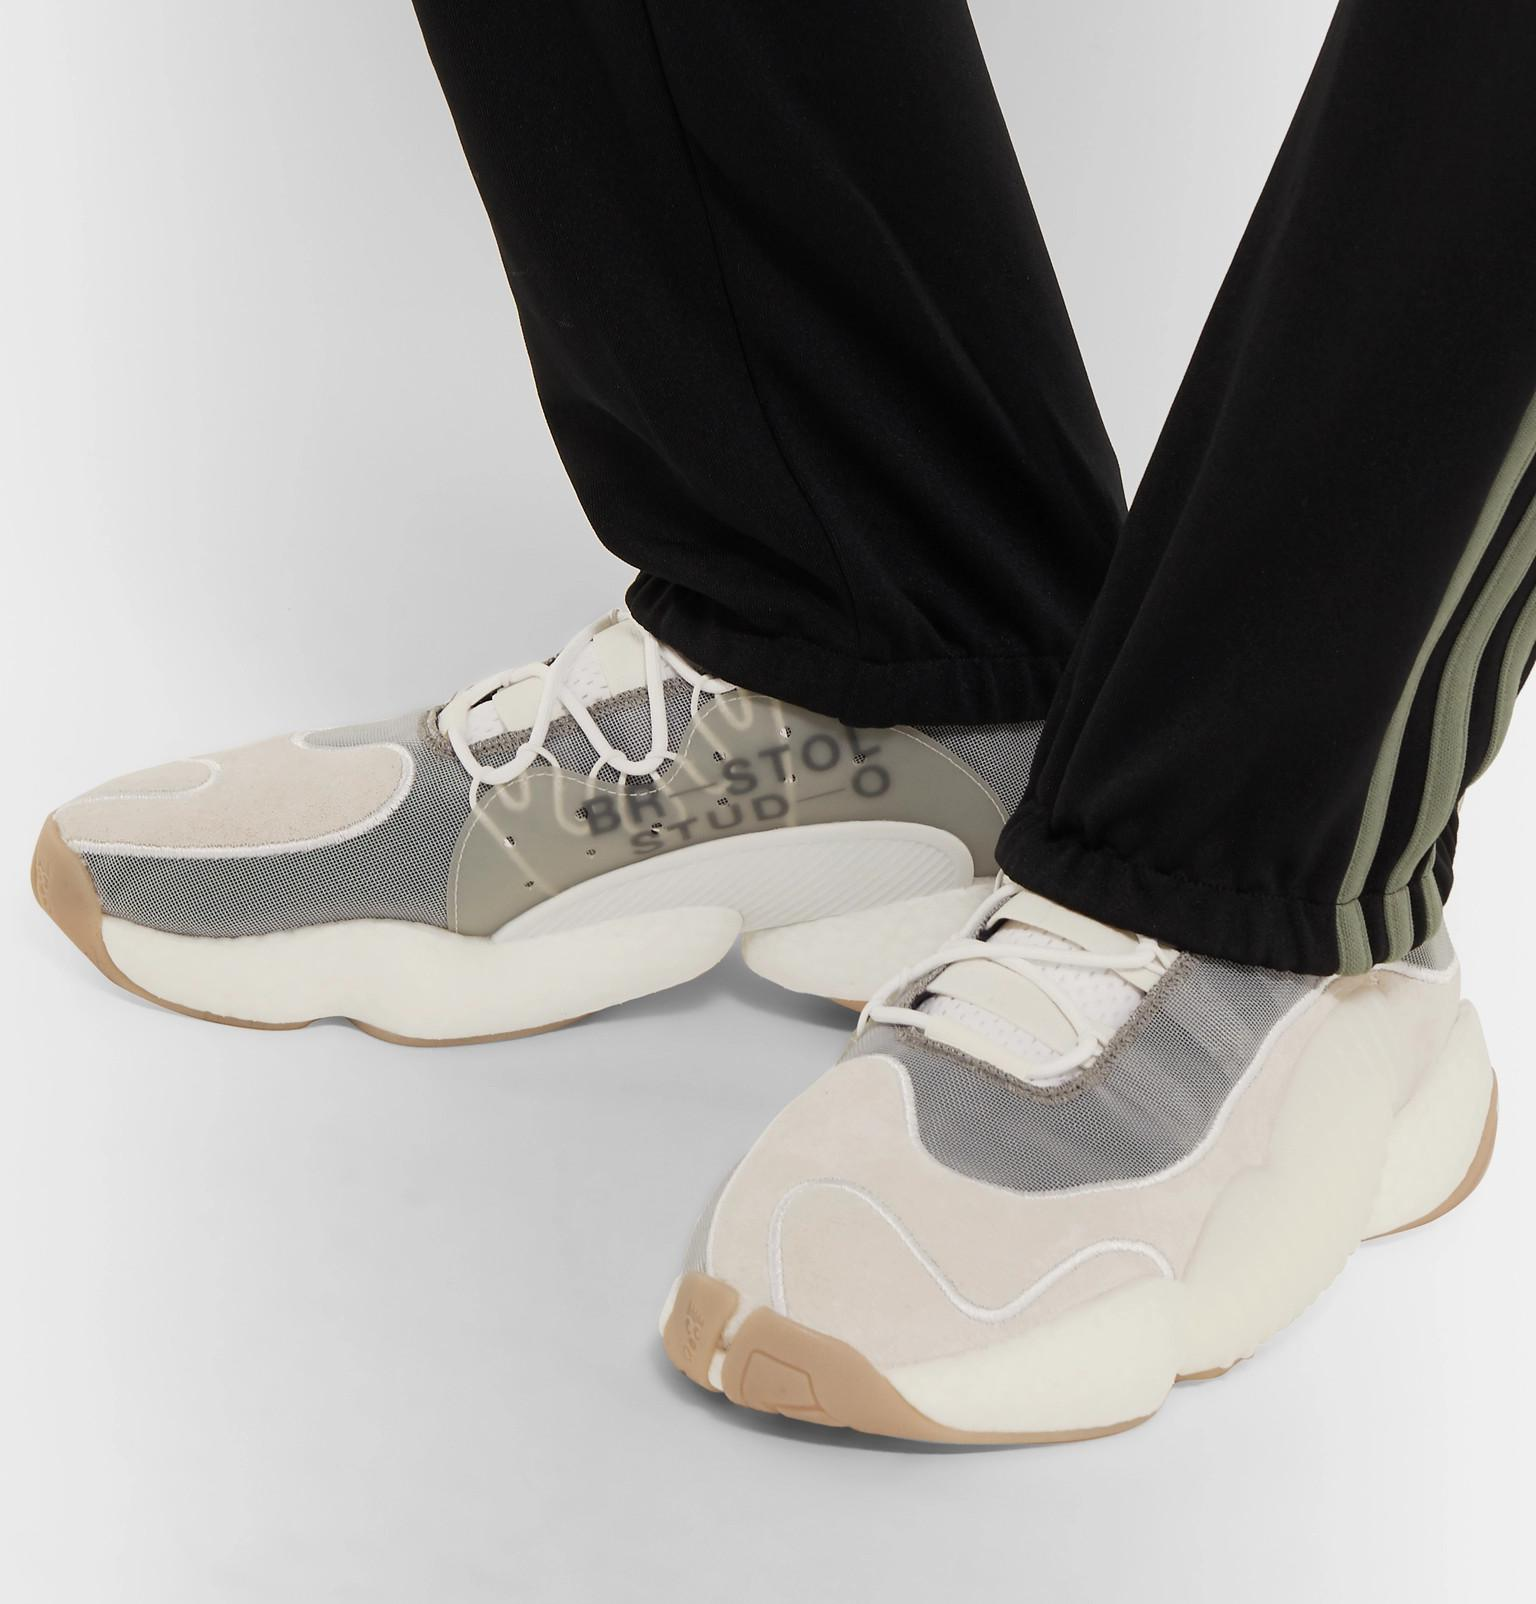 sports shoes e7a7f 8ad31 Adidas Originals - White + Bristol Studio Crazy Byw Lvl Ii Suede And Mesh  Sneakers for. View fullscreen